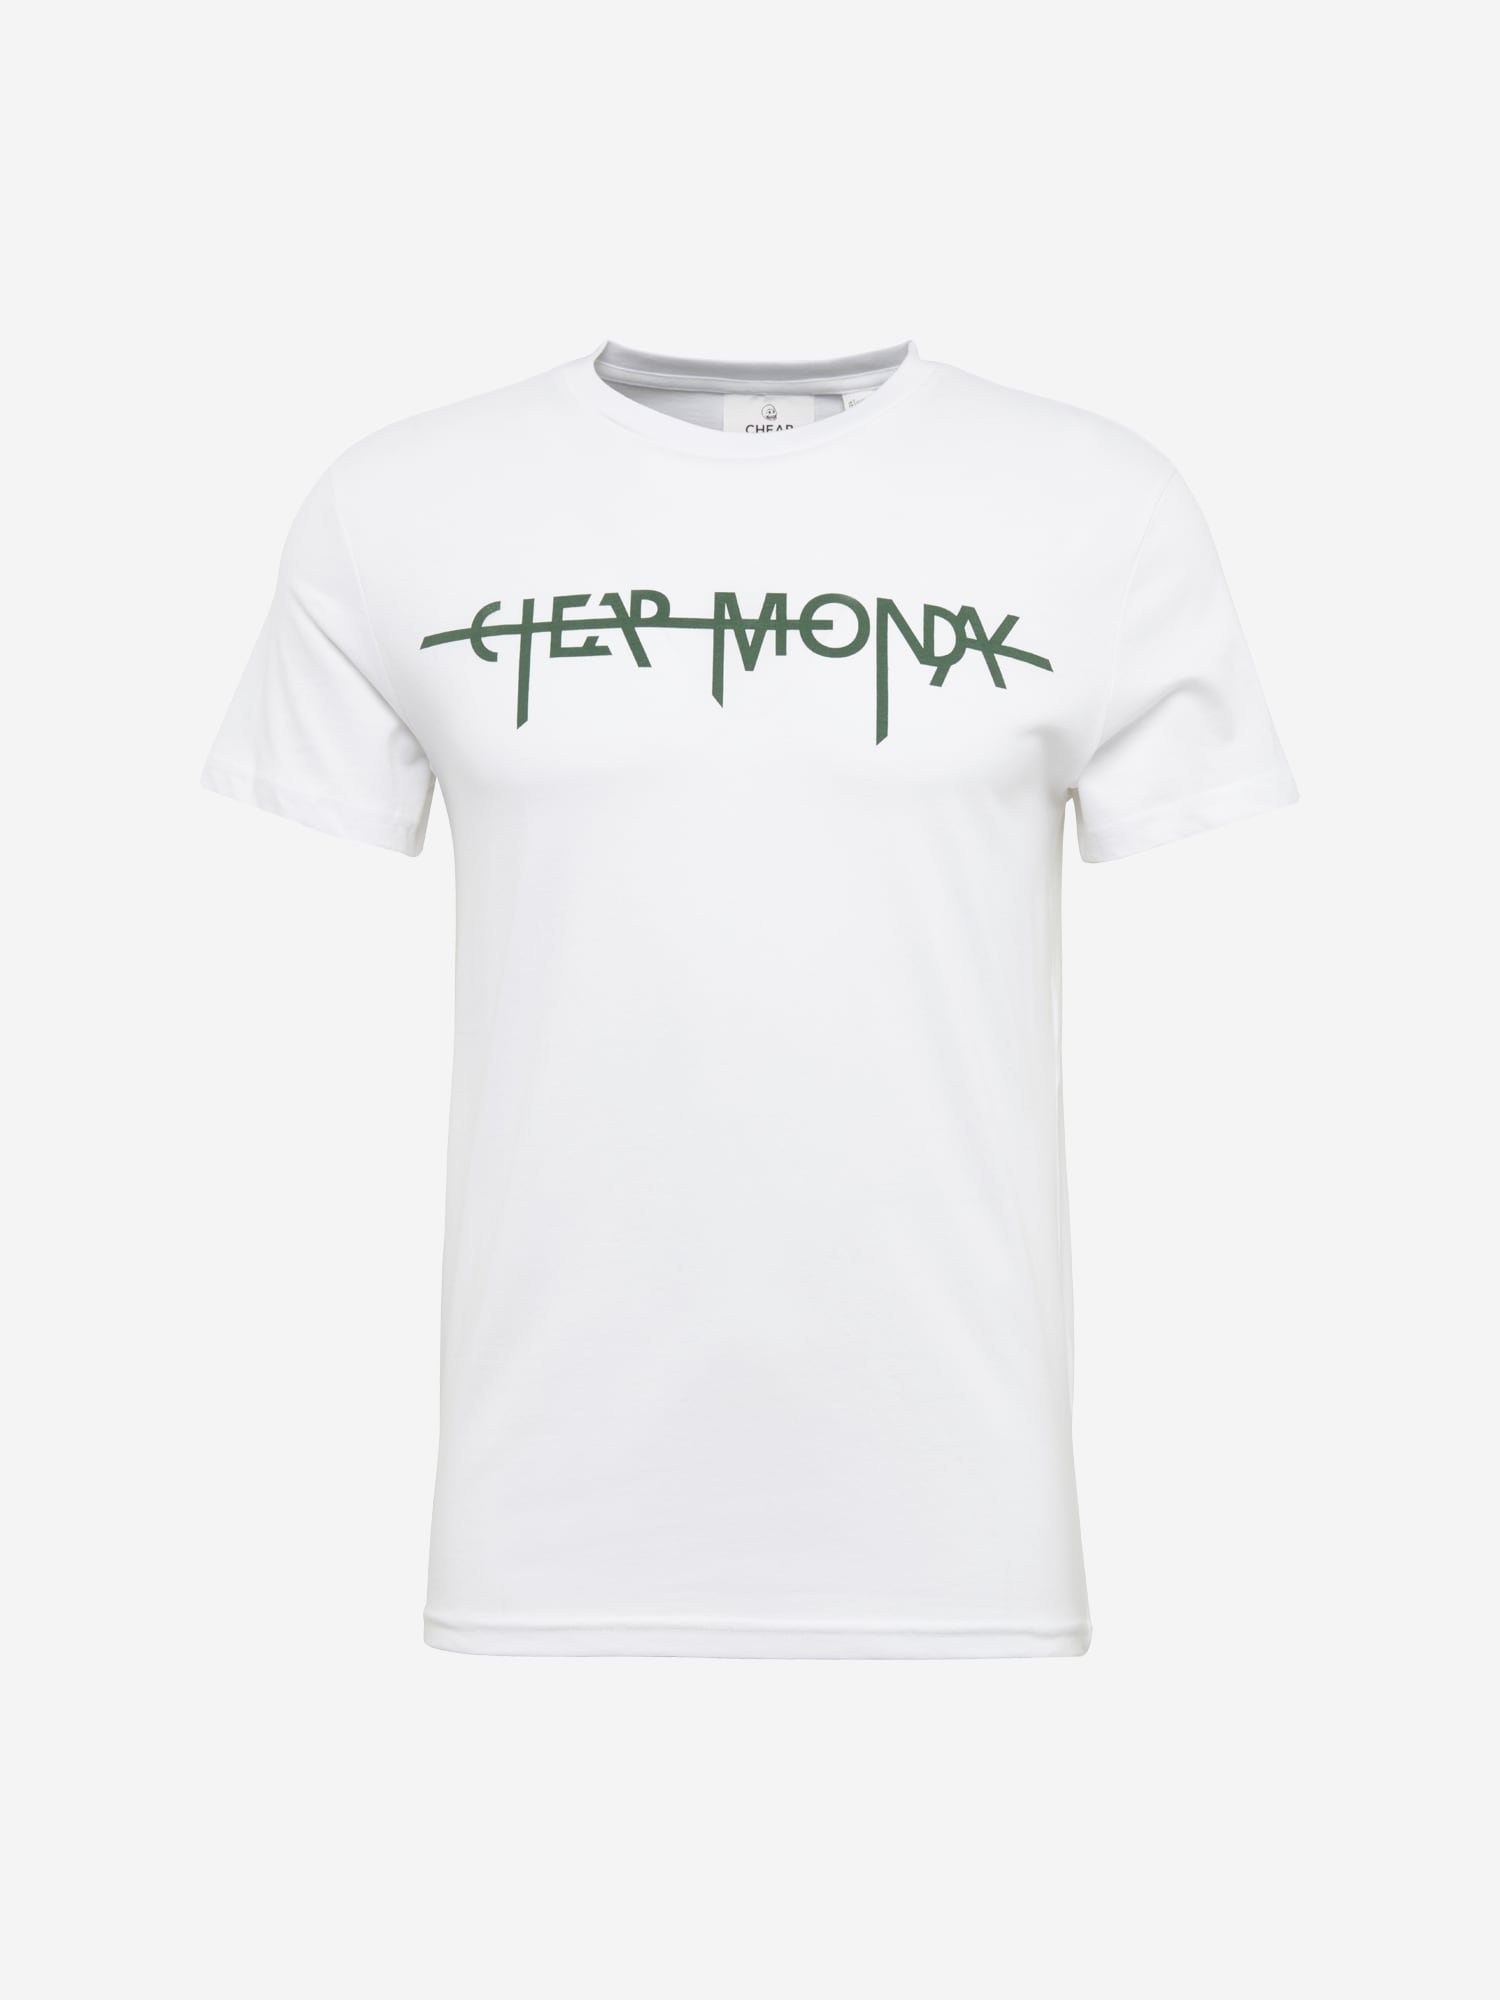 CHEAP MONDAY Heren Shirt Standard tee Hacker logo groen wit